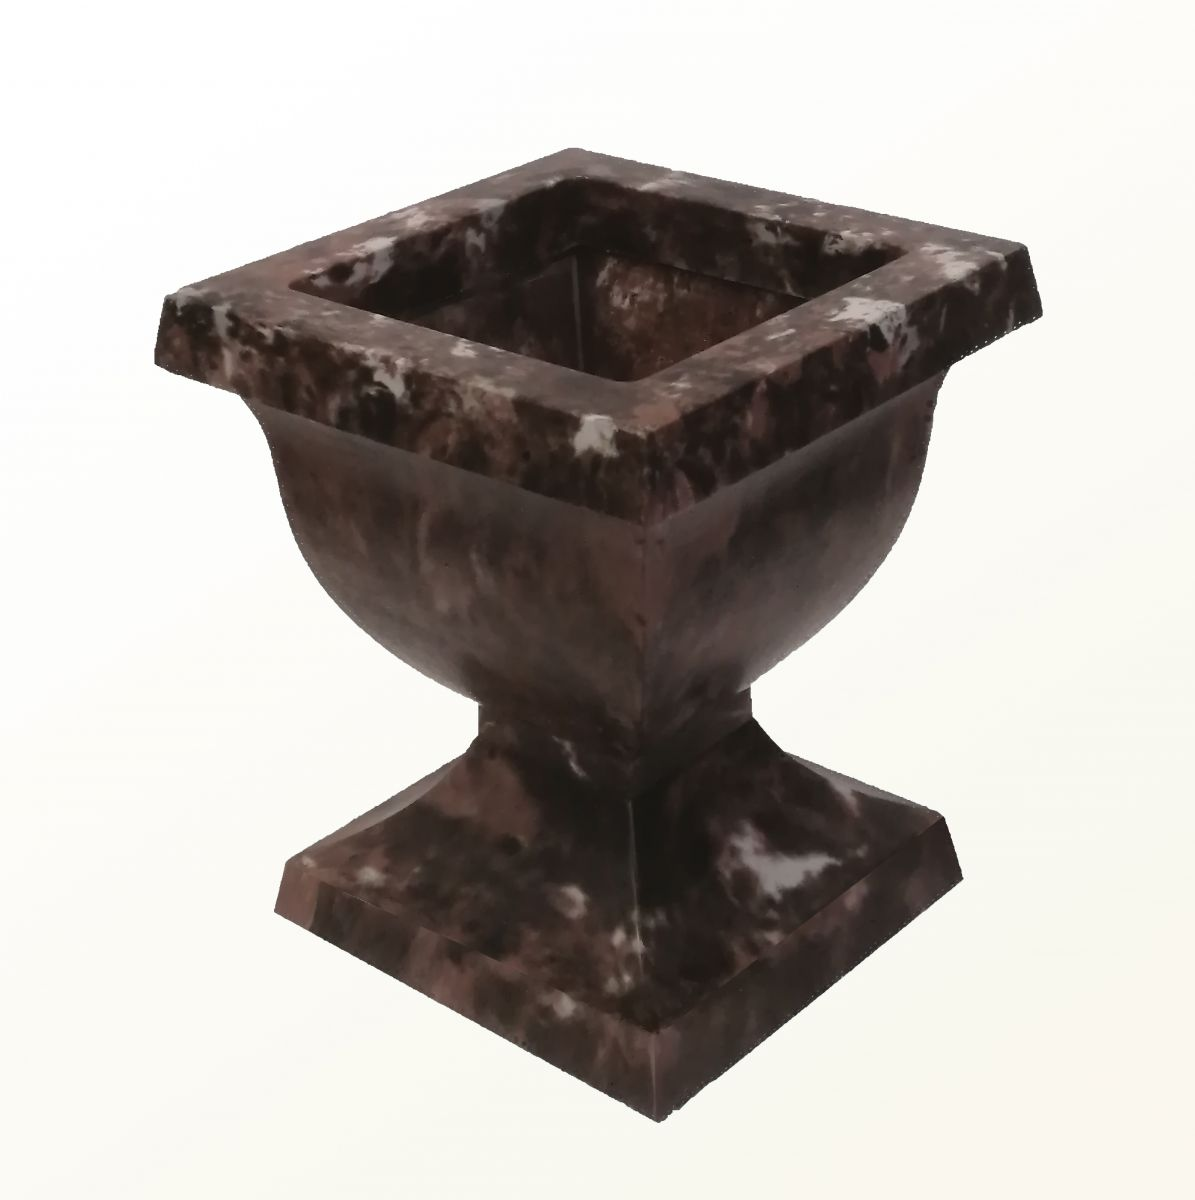 New product. Square flowerpot.